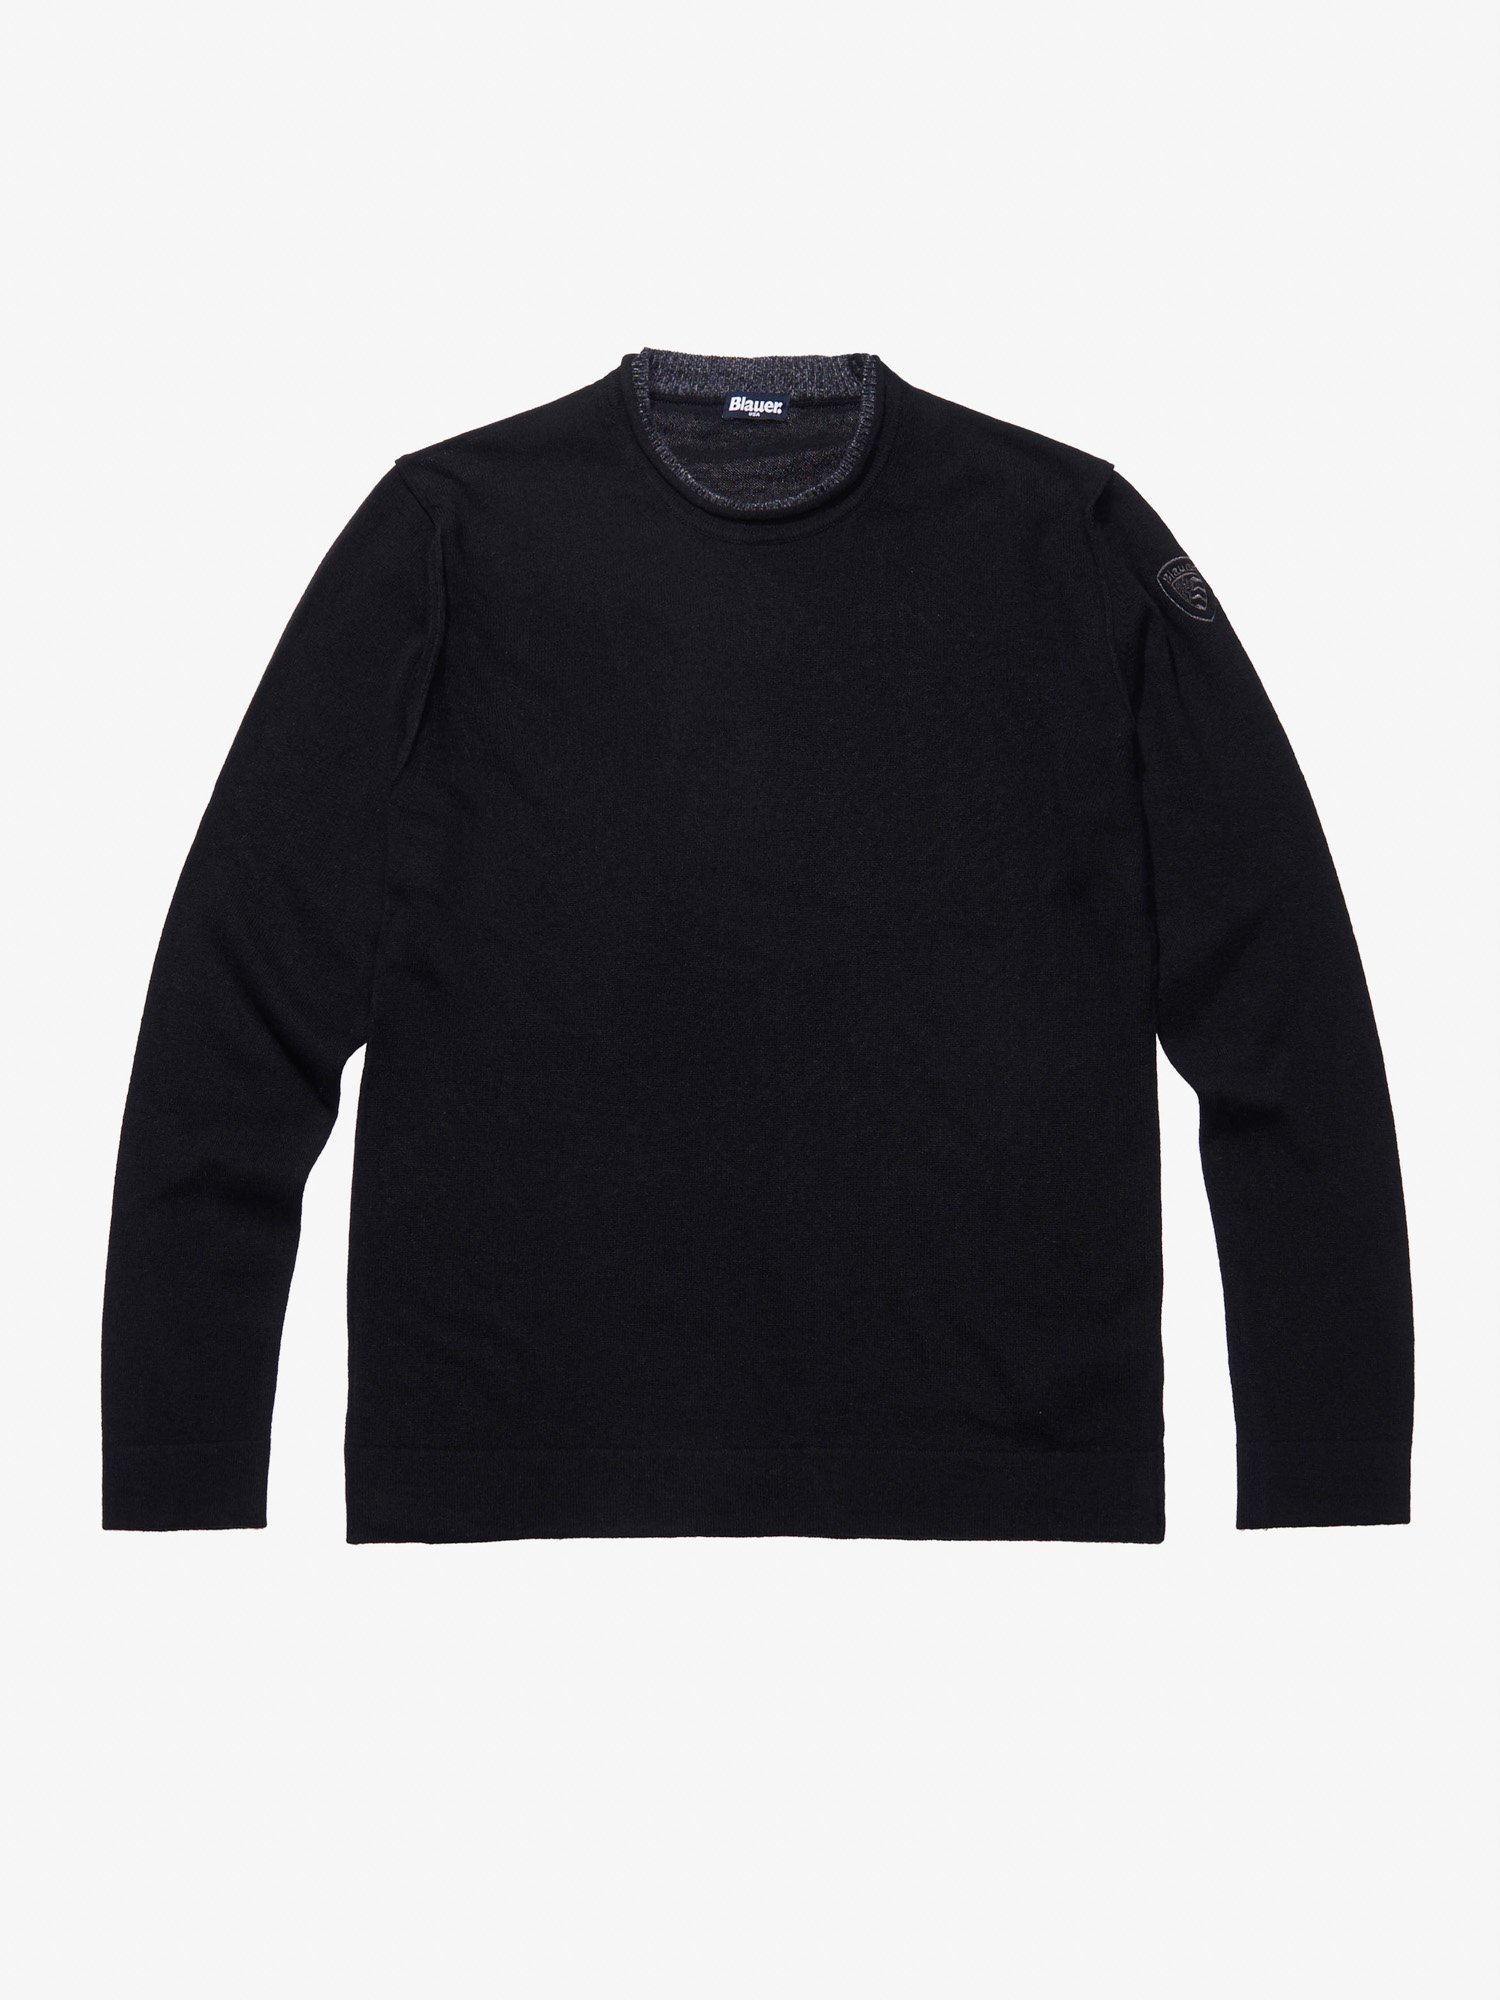 CREW NECK WOOL CASHMERE SWEATER - Blauer